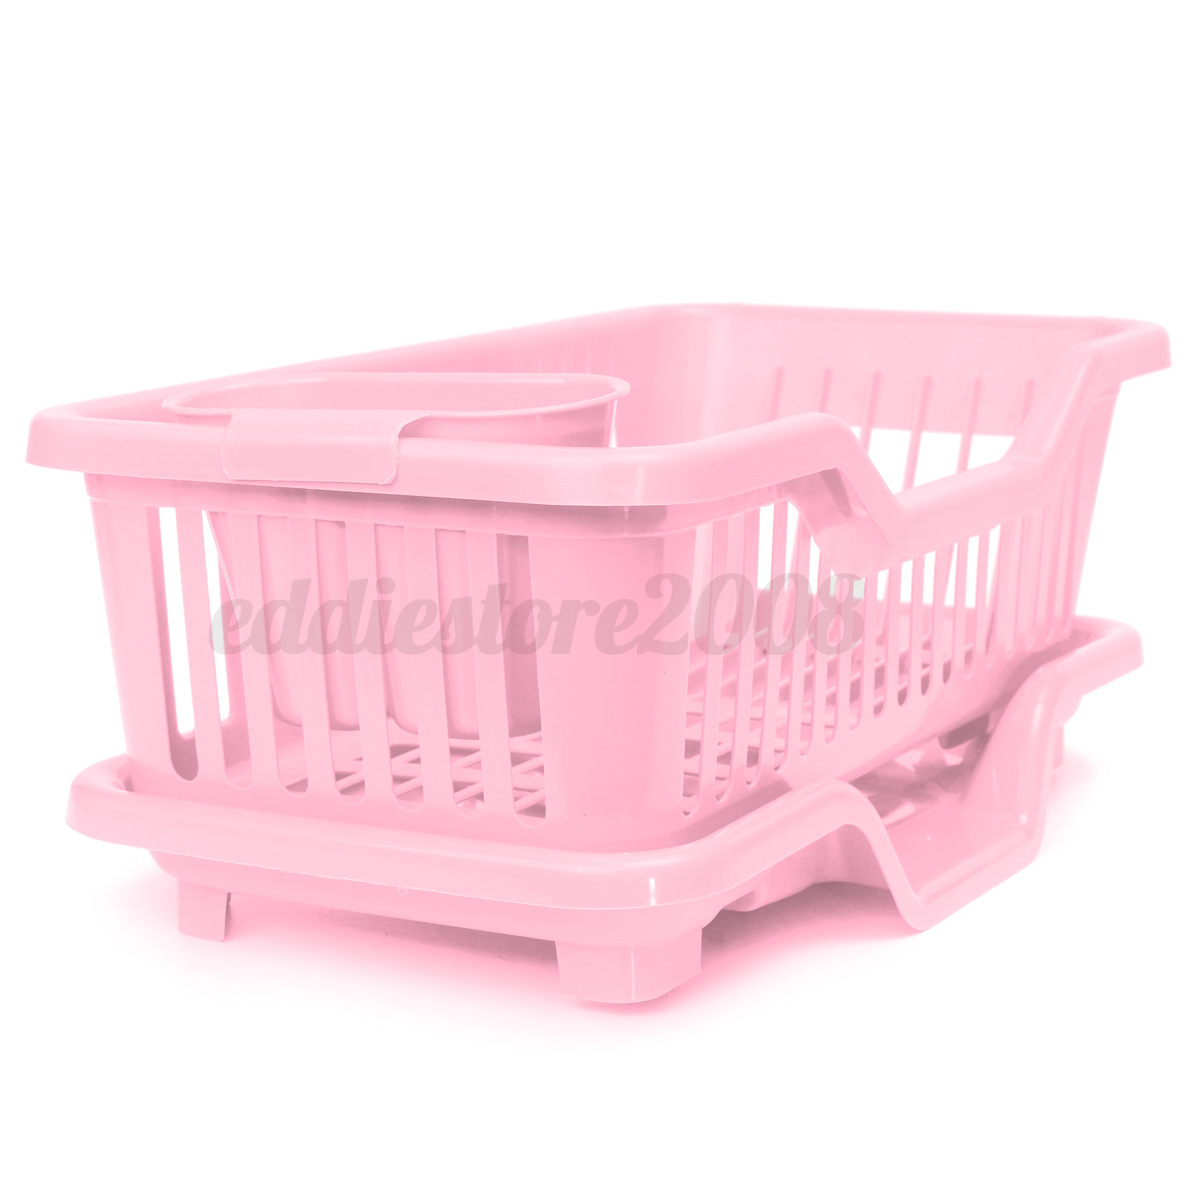 4 color kitchen sink dish drainer drying rack wash holder basket organizer tray ebay - Kitchen sink drying rack ...